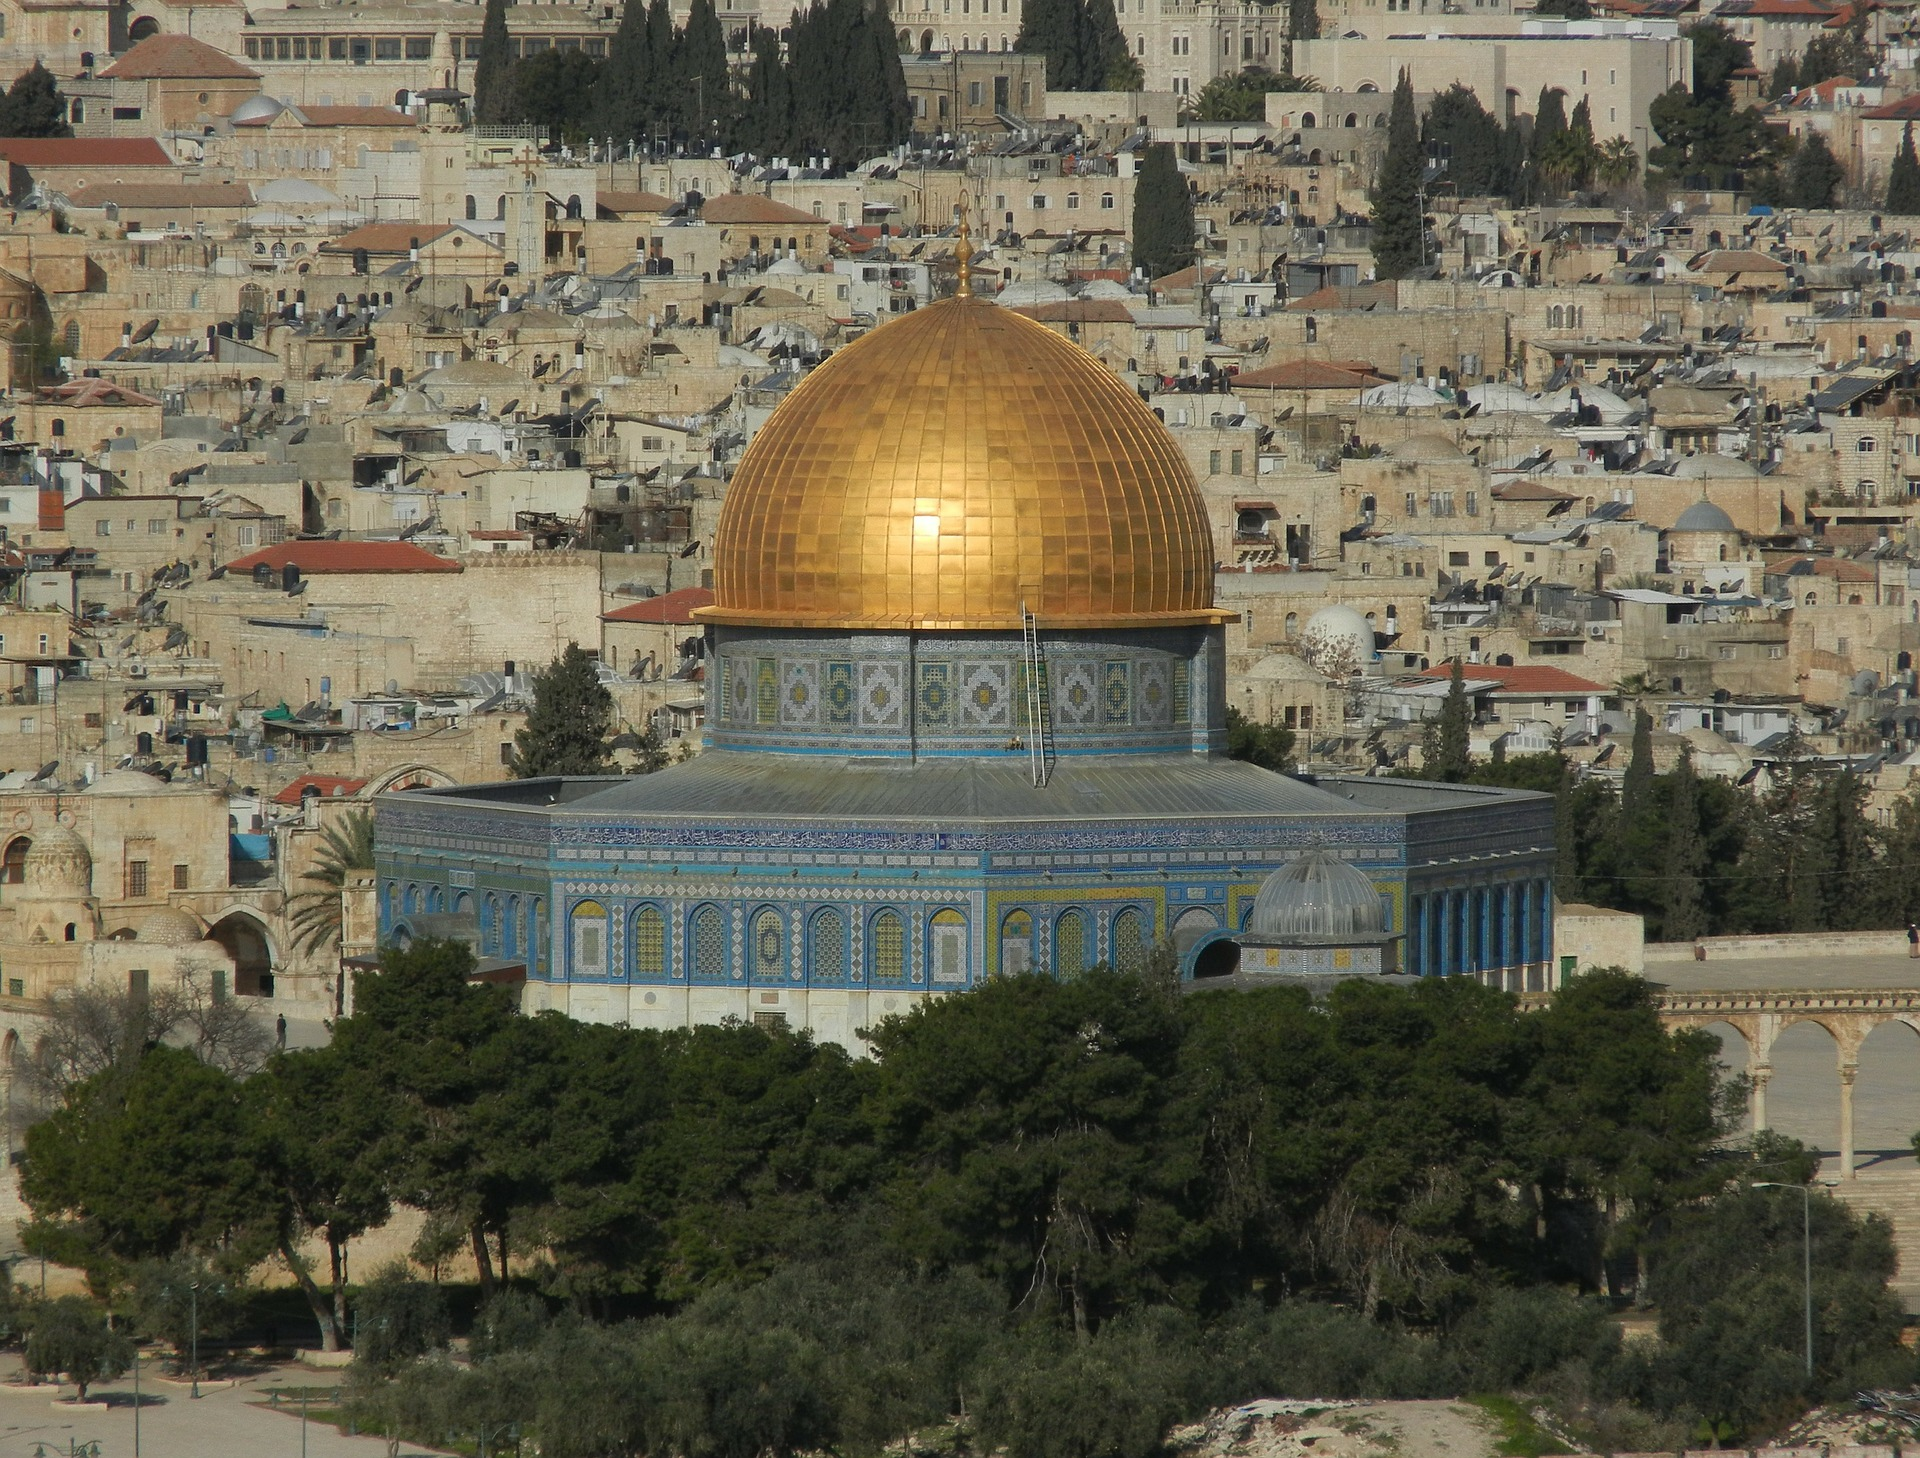 Israel the Holly Land - Al-Aqsa Mosque, Jerusalem, Israel